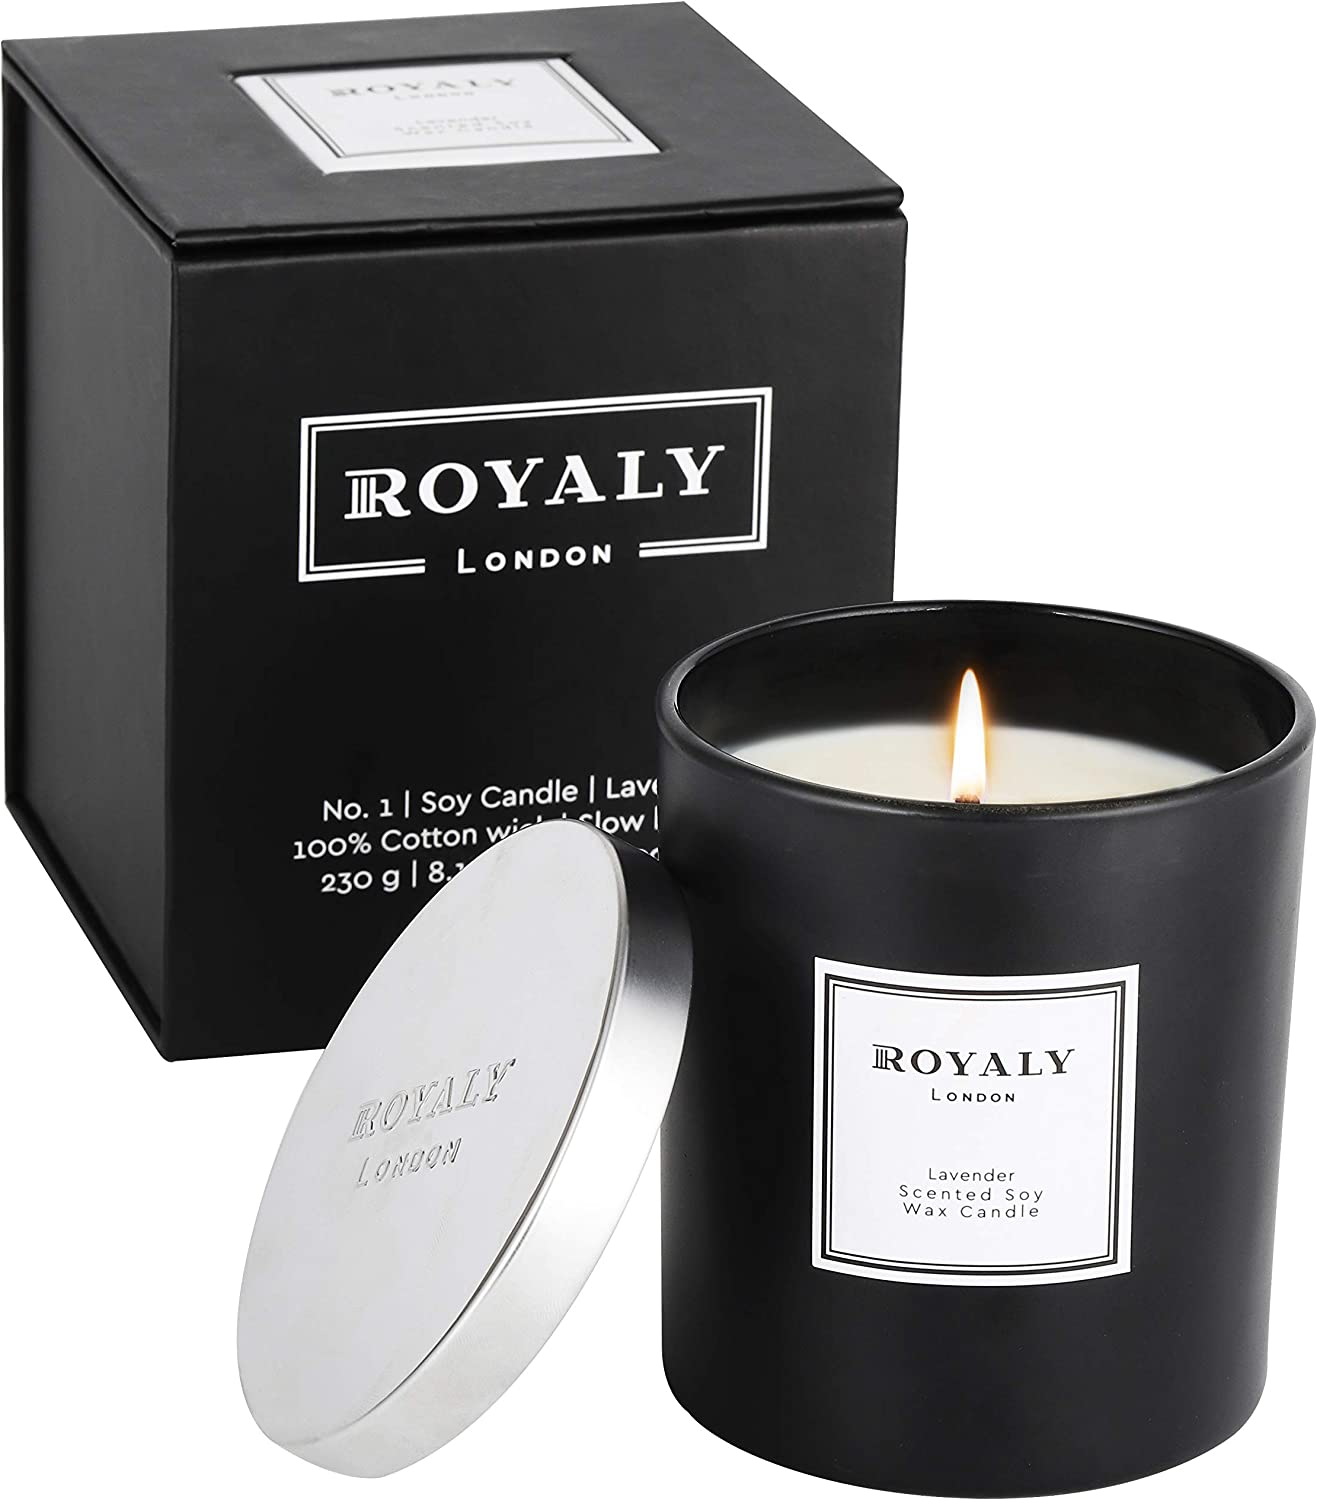 Royaly Home Scented Candles | Luxury Scented Soy Wax Lavender Jar Candle | Birthday Gifts for Women | Slow Burning & Hand Poured Aromatherapy Candles for Home | 8 Oz